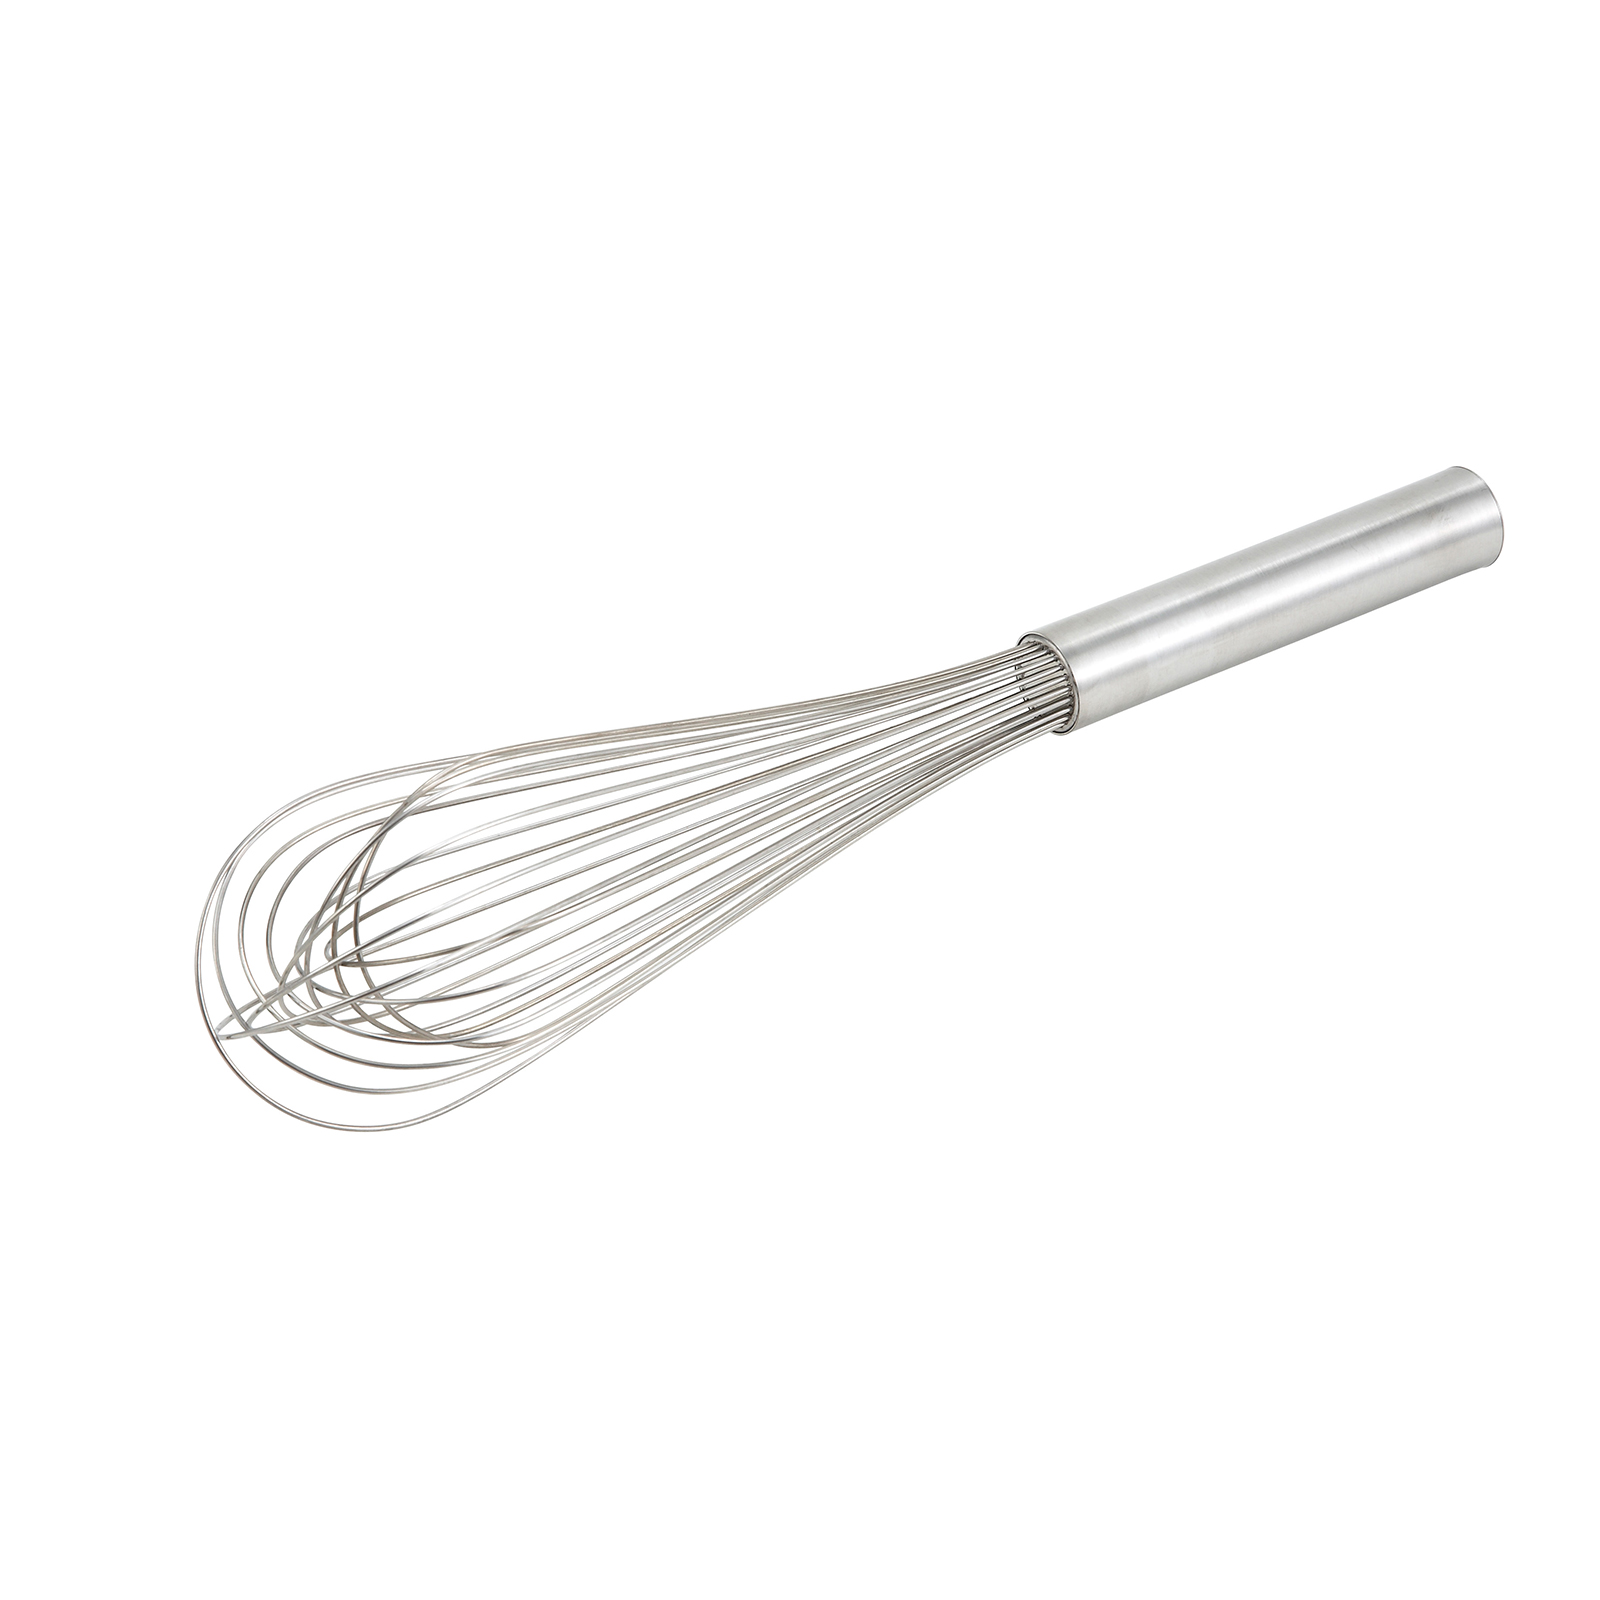 Winco PN-12 piano whip / whisk